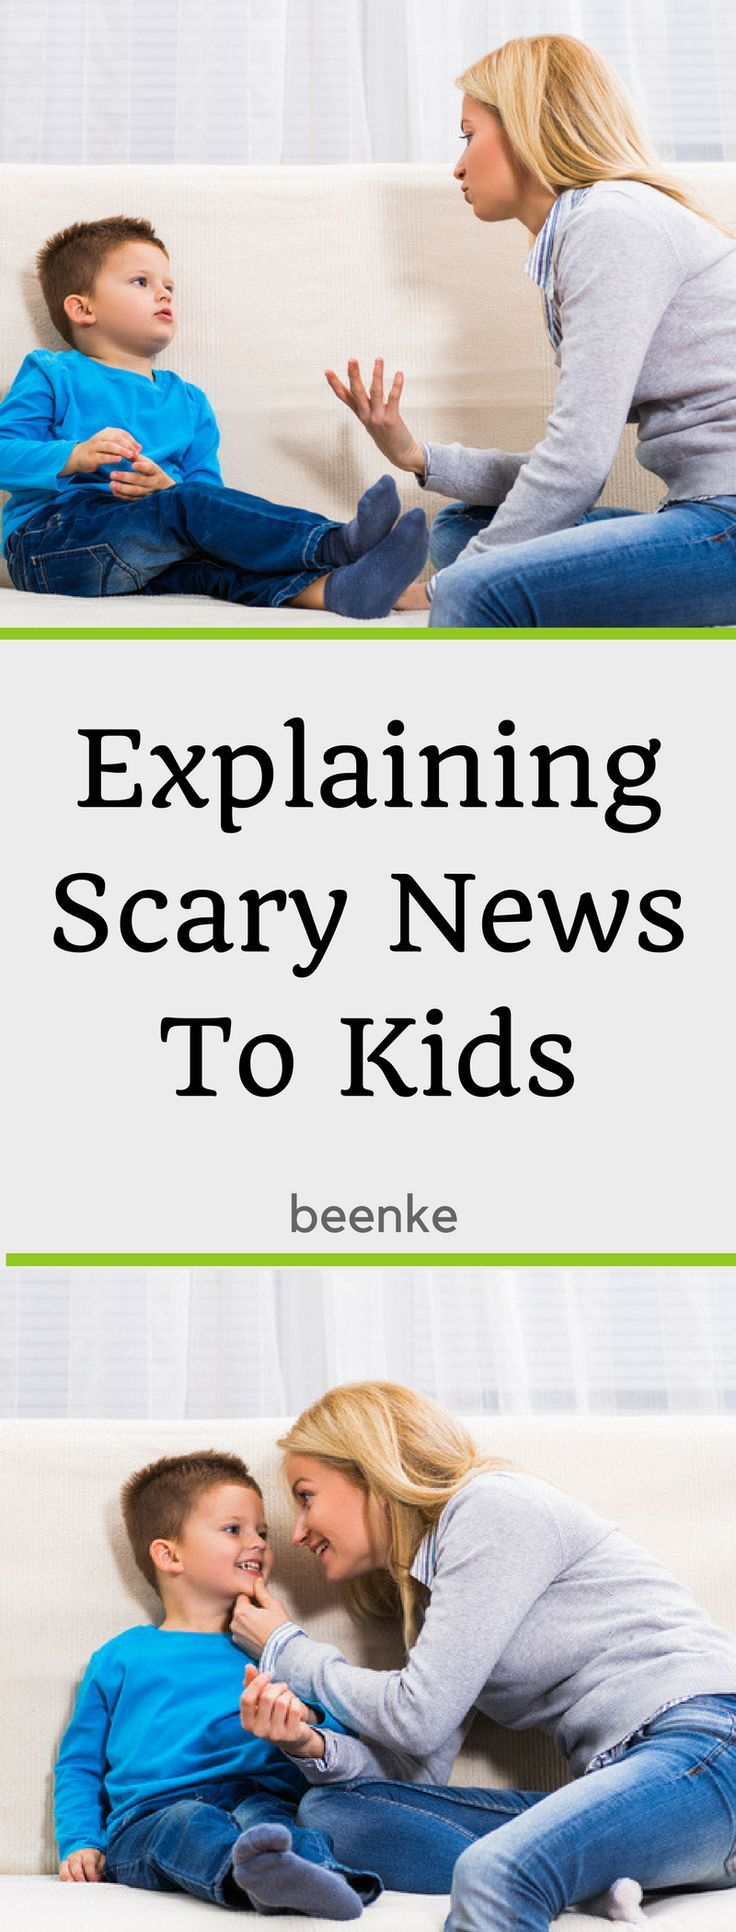 Not sure what to say when your kids ask about scary events in the news? (i.e. natural disasters, shootings, terrorist acts, etc) Let us help you explain scary news to kids. We have 6 tips, all age appropriate and talking scripts for different events. #beenke #ParentingTips